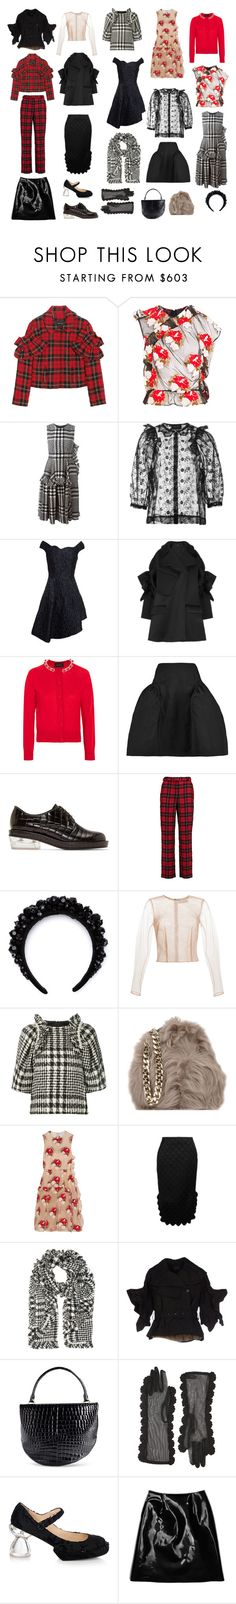 """ELECTRIC FALL"" by stephanie-nina ❤ liked on Polyvore featuring mode et Simone Rocha"